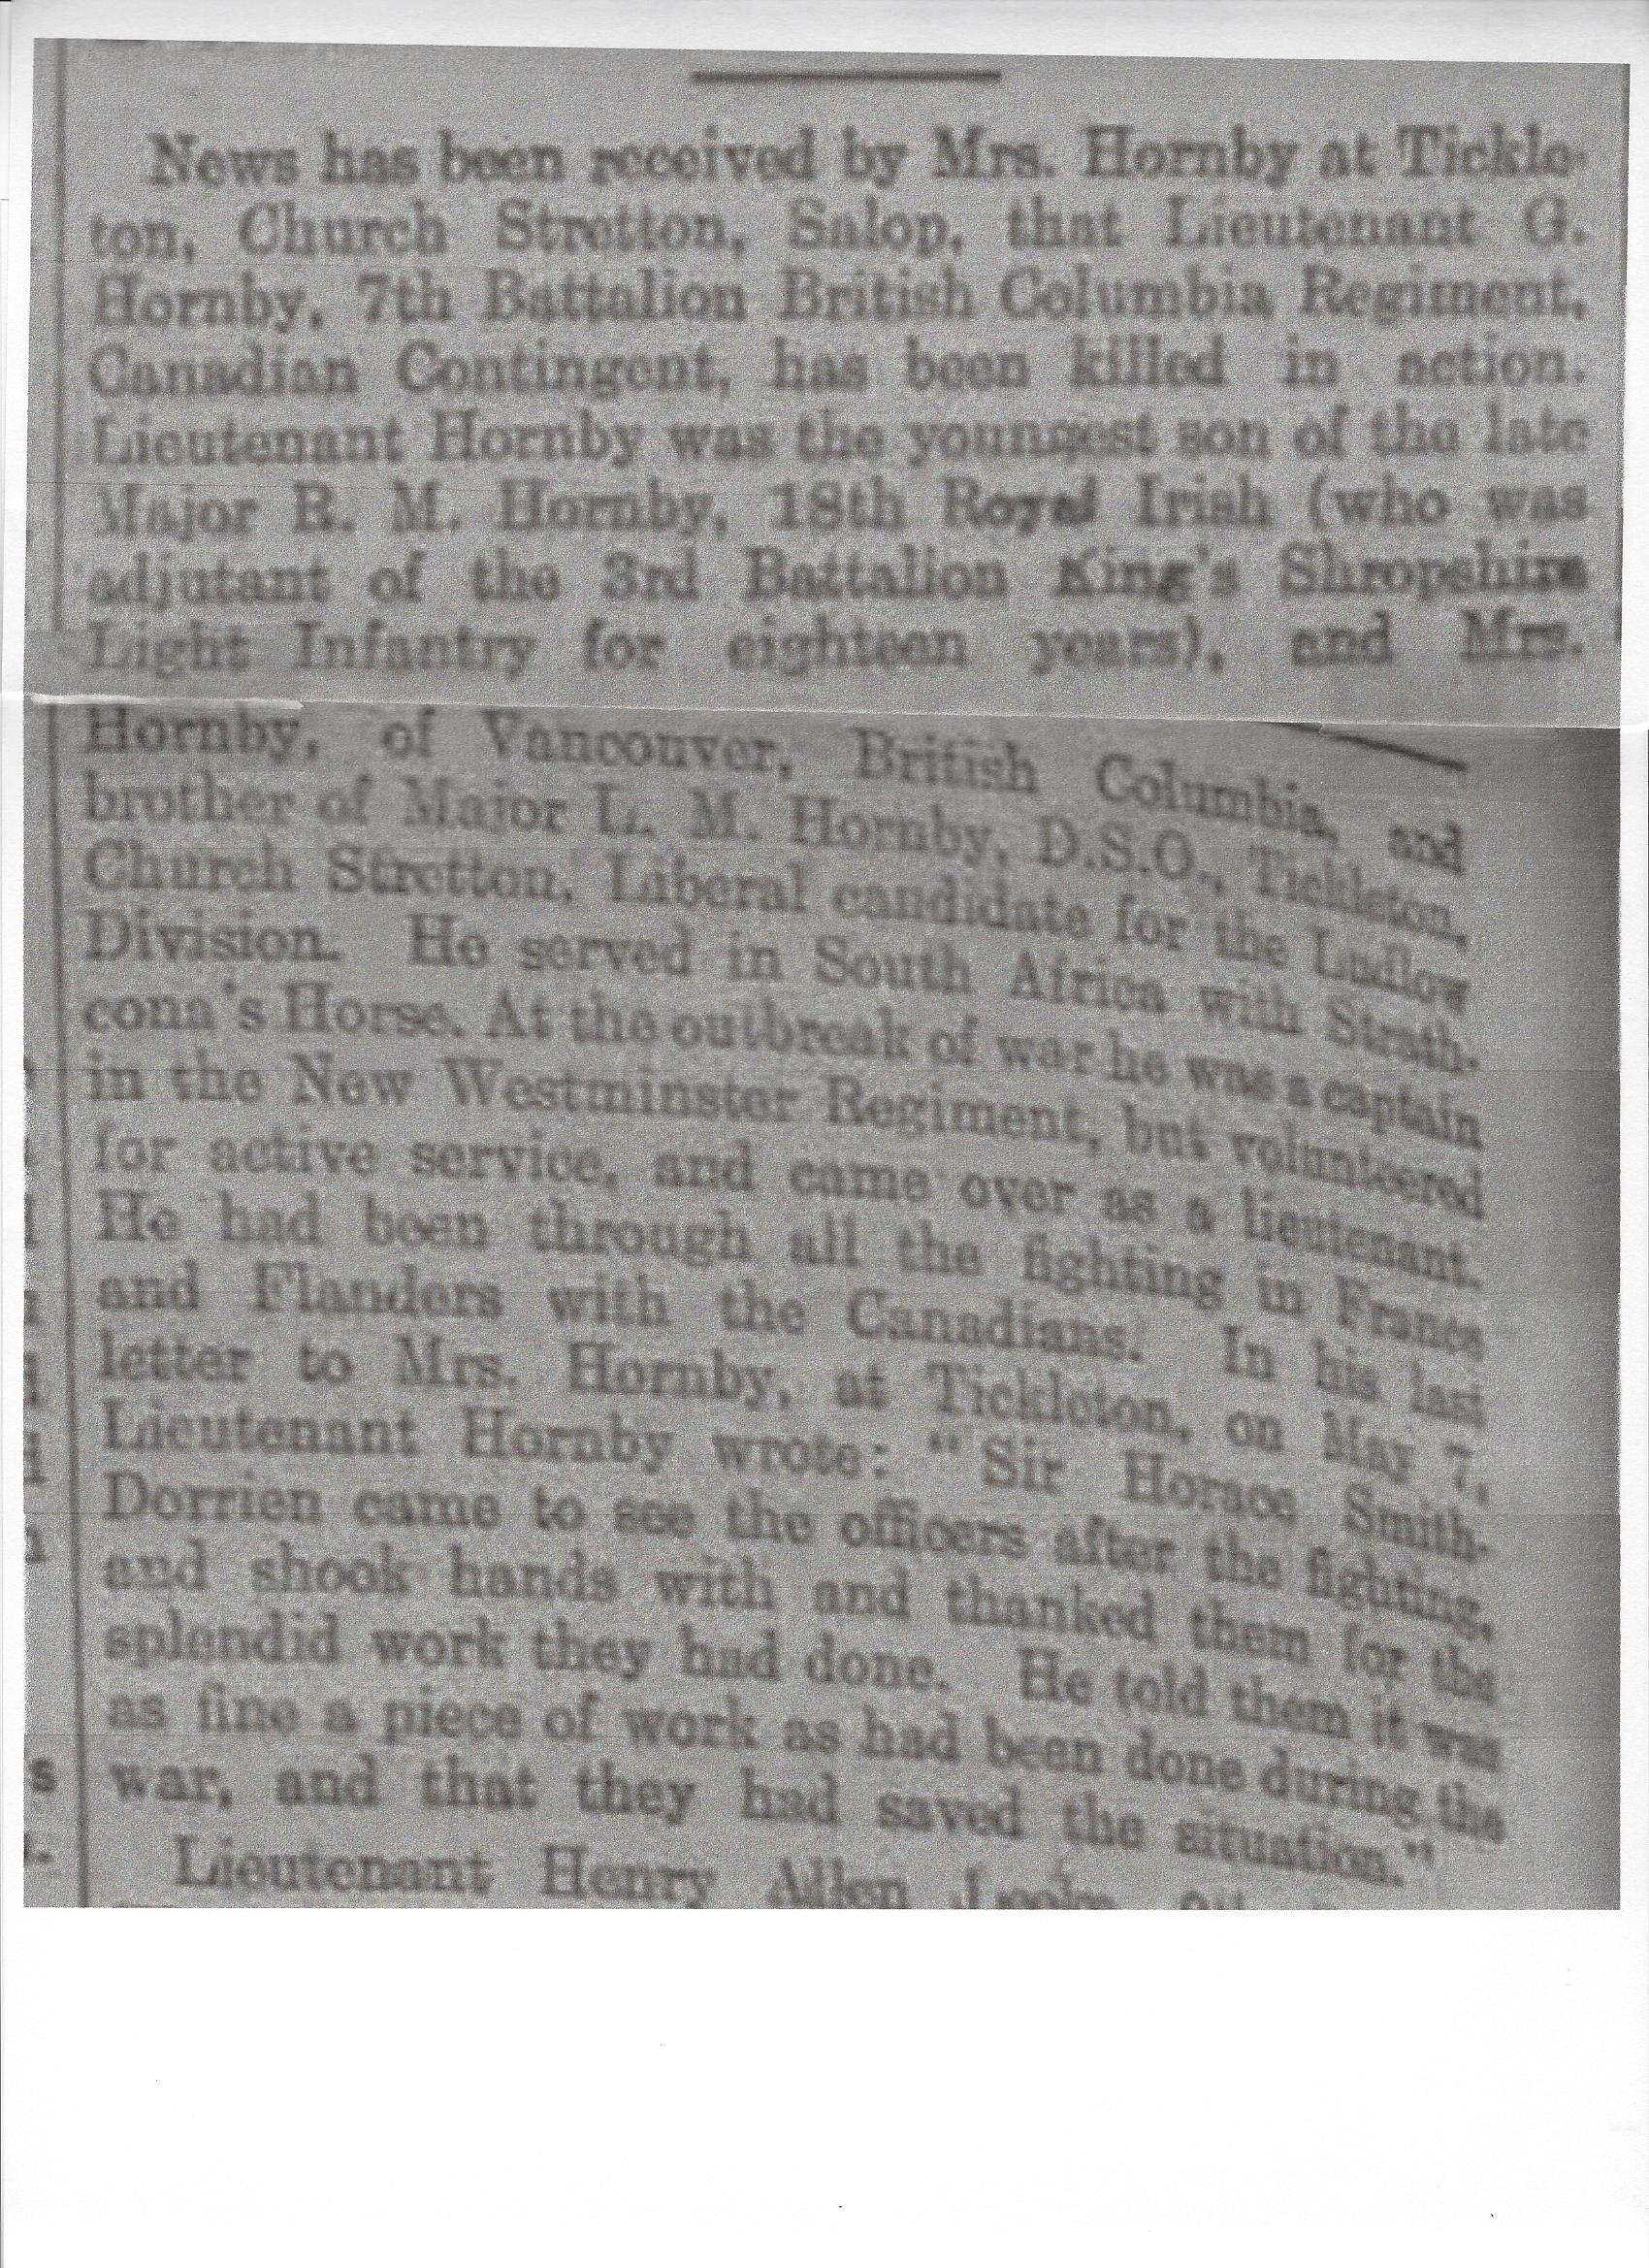 Newspaper Clipping– Newspaper clipping from Daily Telegraph of June 10, 1915. Image taken from web address of http://www.telegraph.co.uk/news/ww1-archive/11662981/Daily-Telegraph-June-10-1915.html